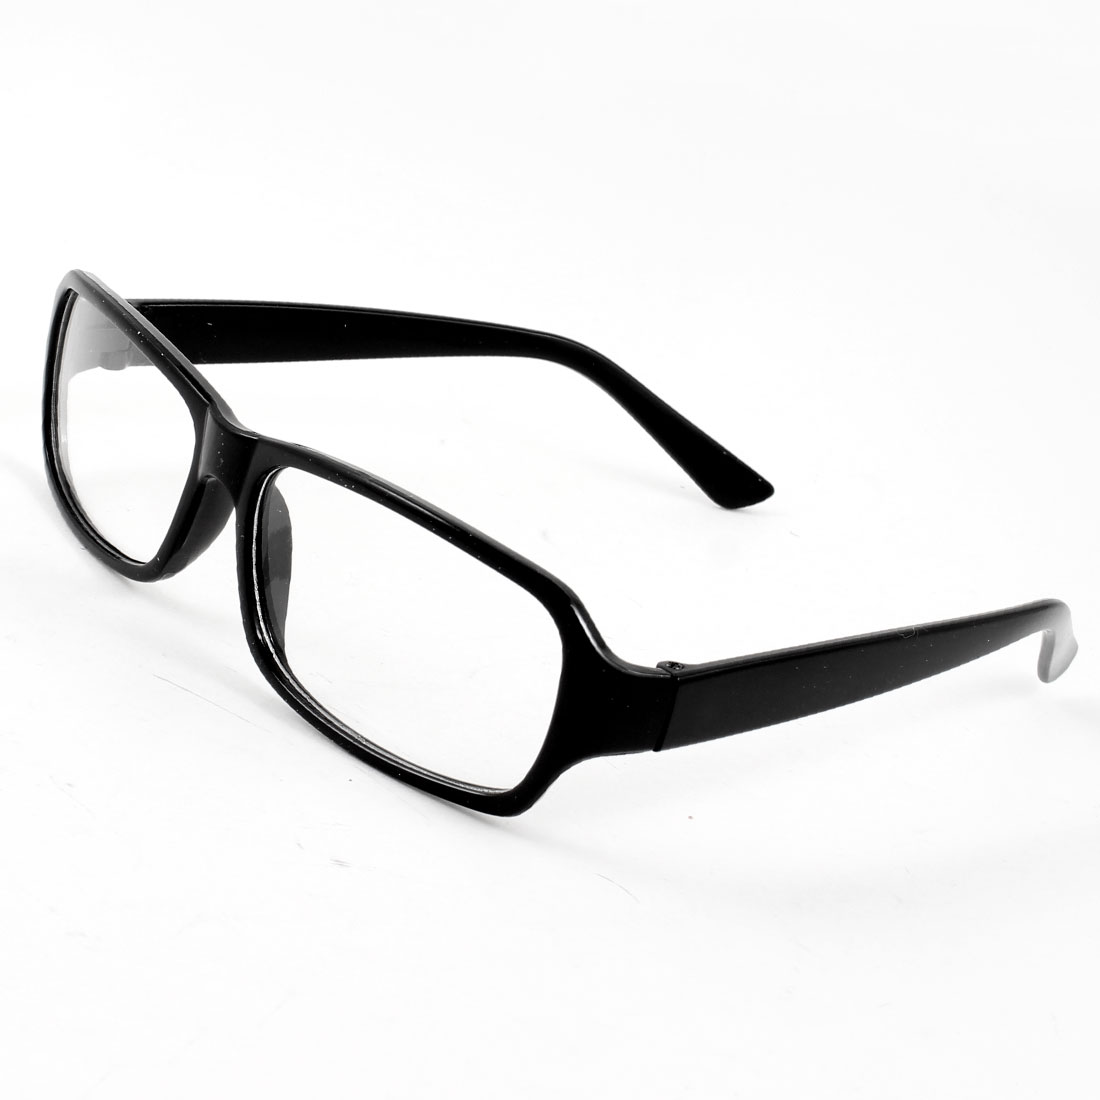 Vintage Arm Clear Lens Plain Spectacles Fashion Eyewear Glasses Black for Lady